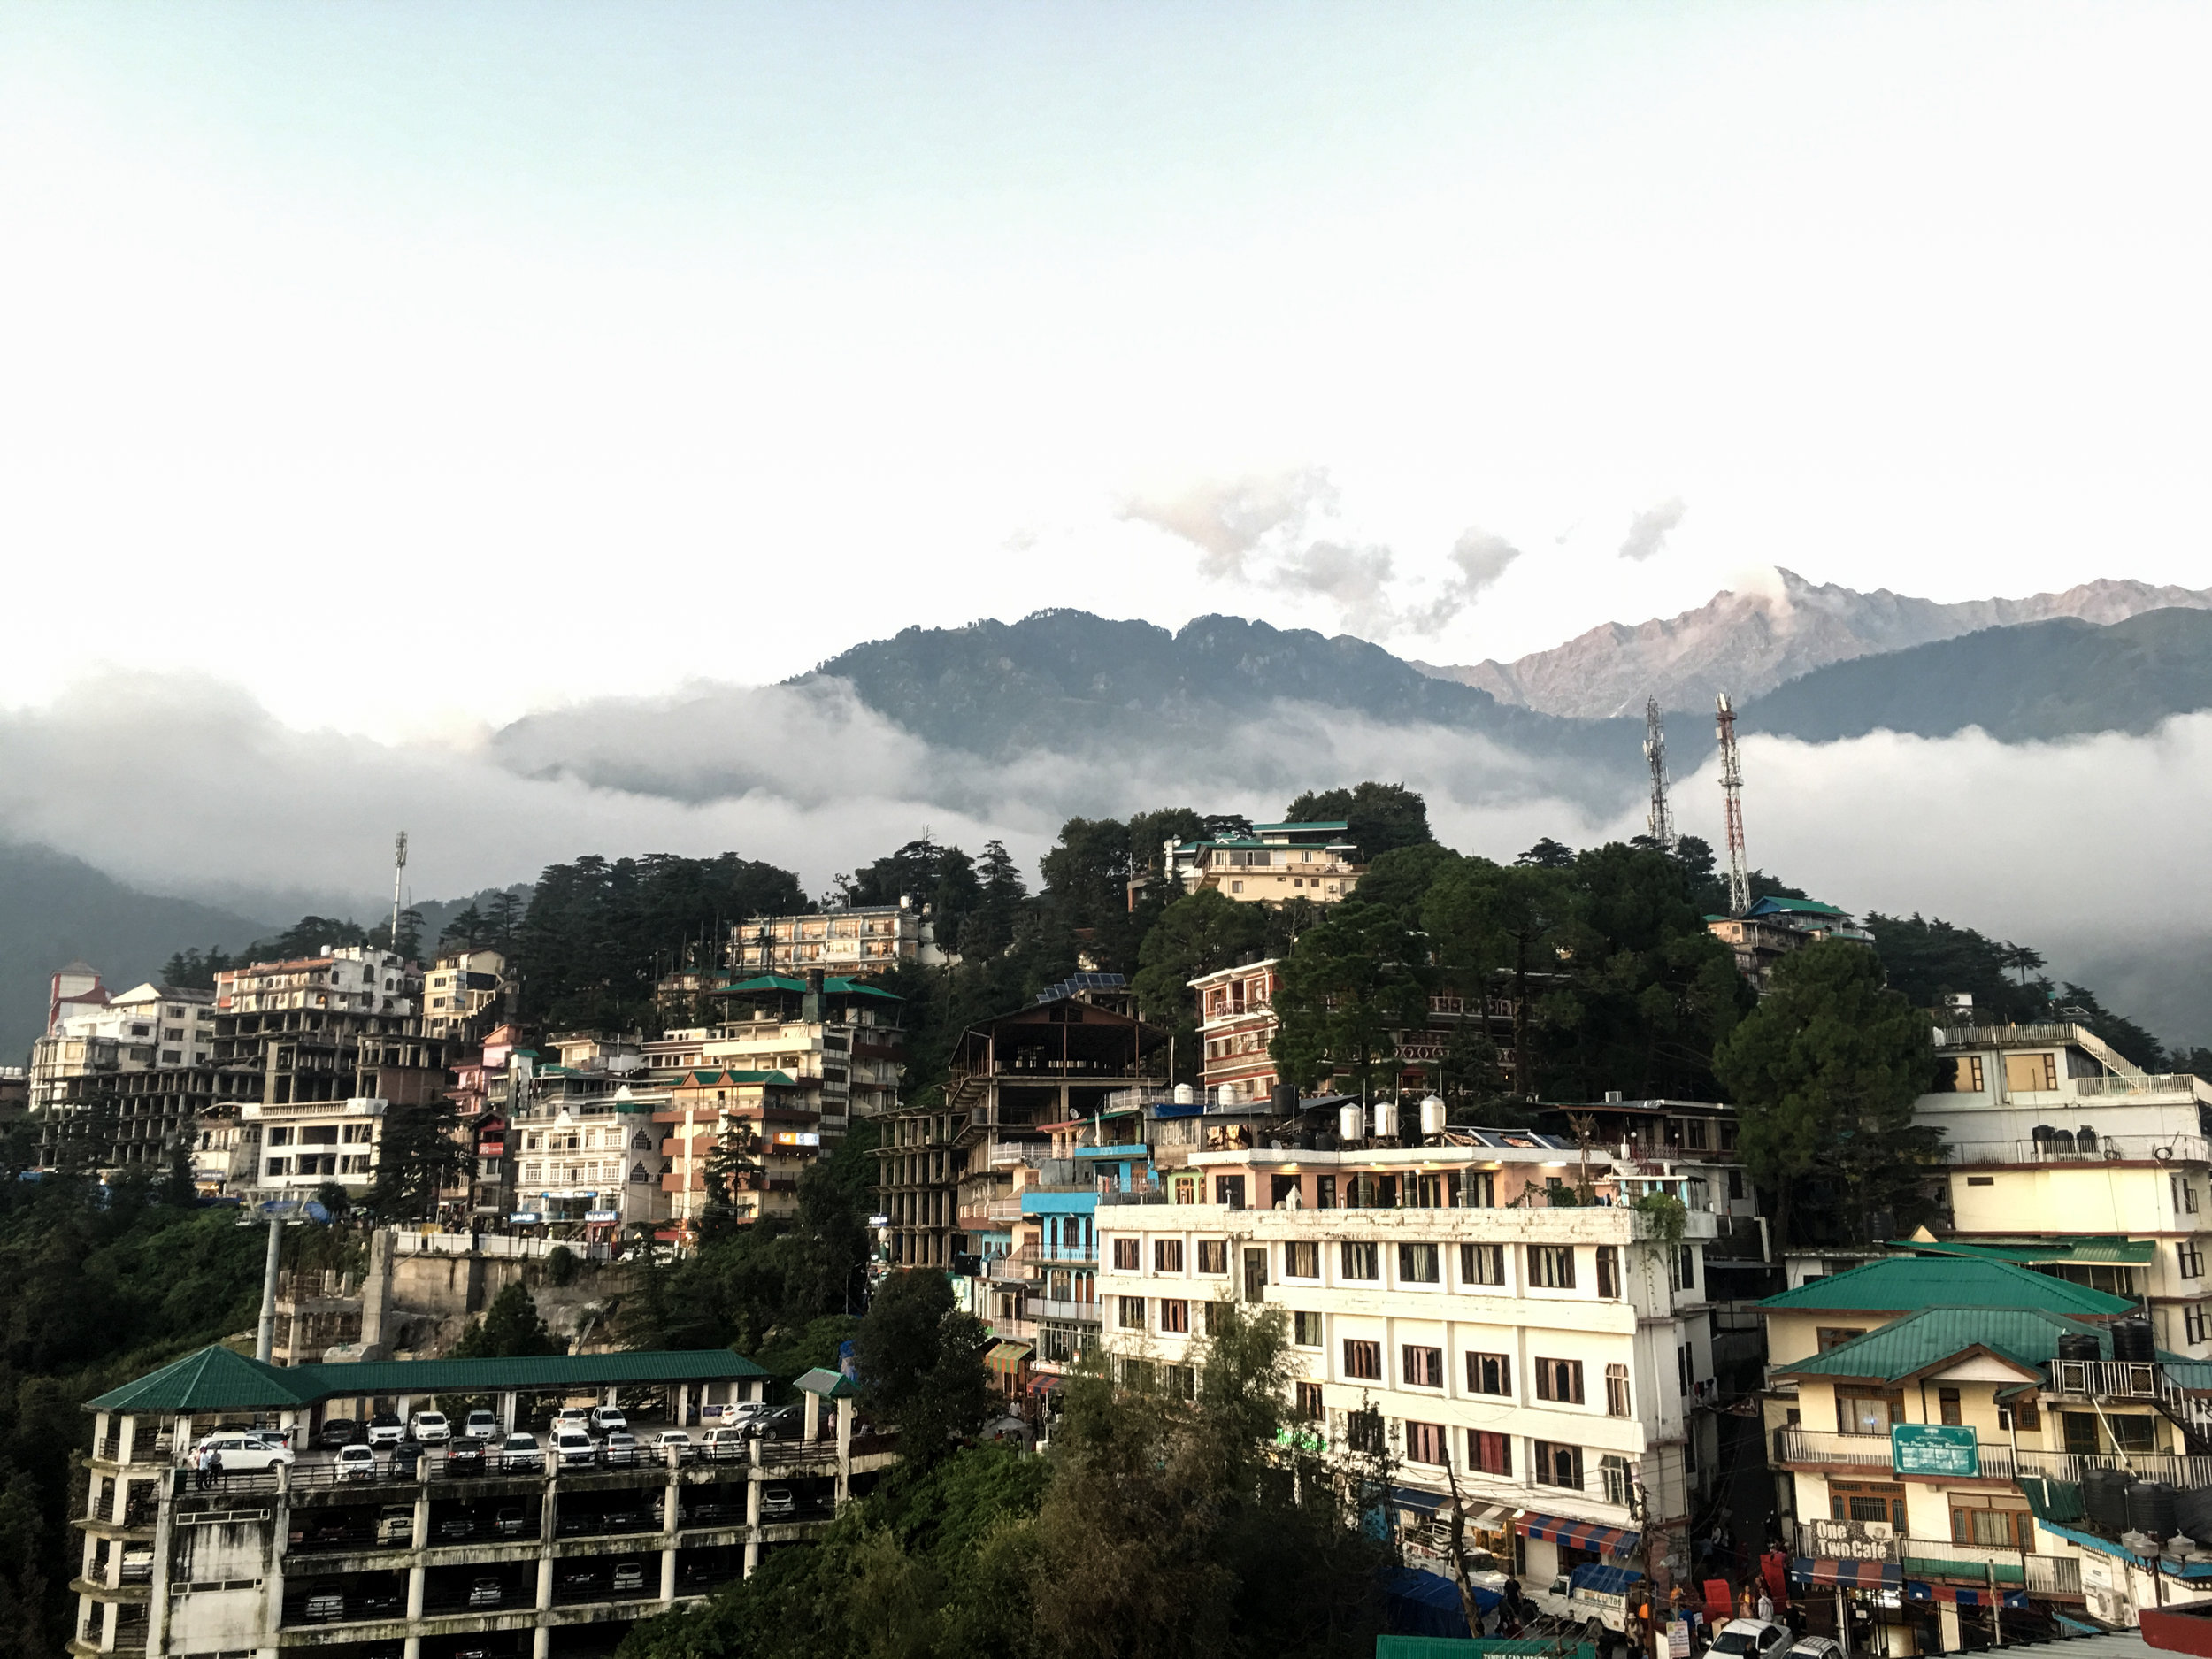 Situated in the lap of mountains and surrounded by dense green forests, Dharamshala is usually lost in clouds. Photo by Avinash Giri.